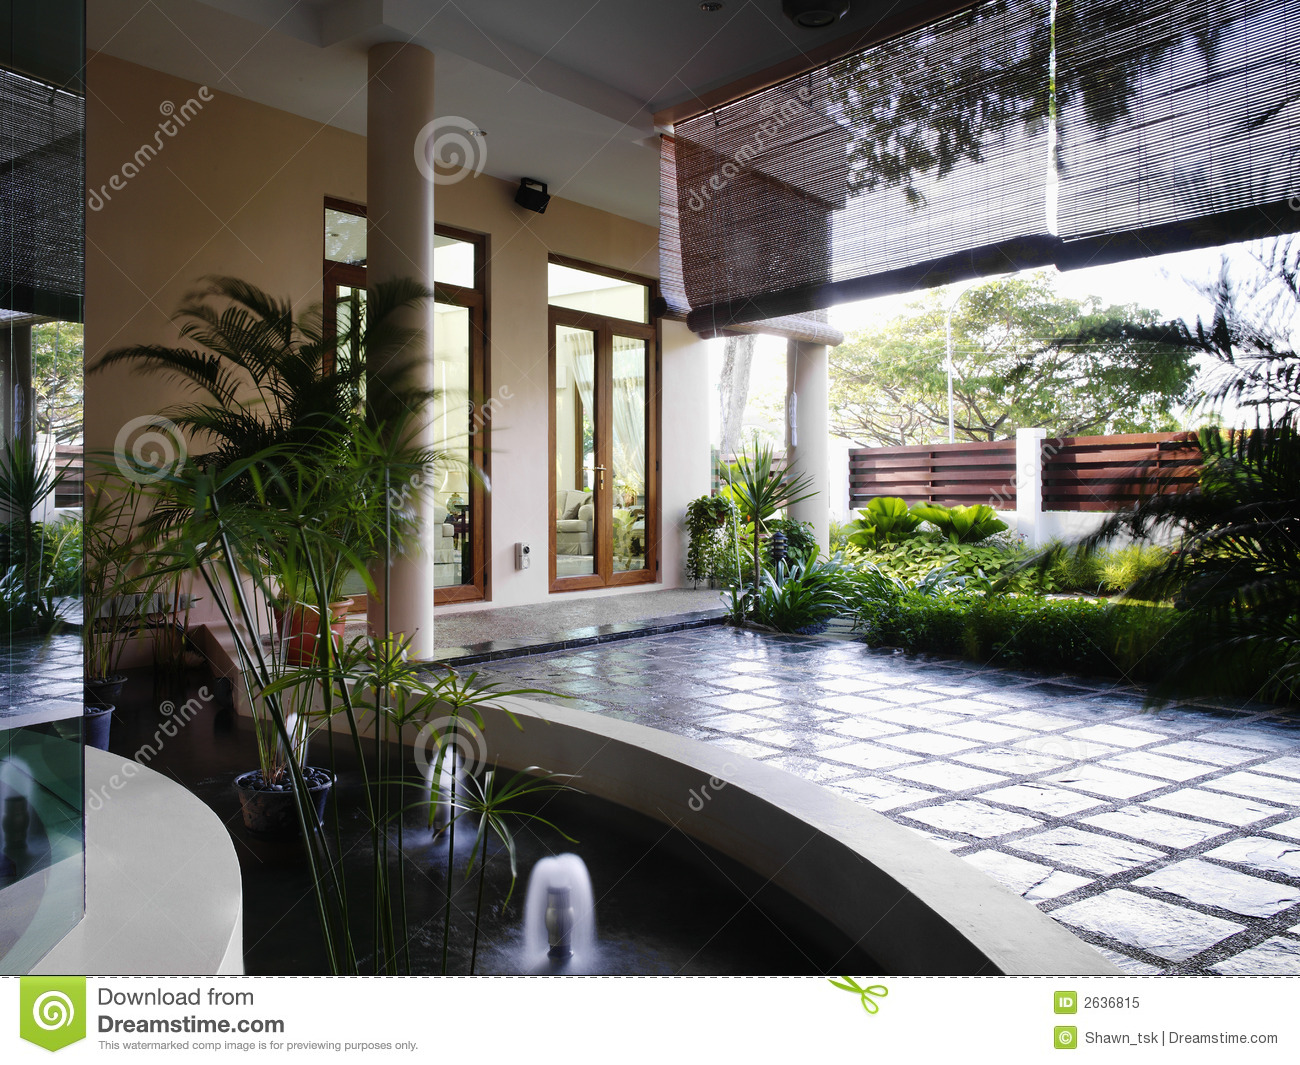 Interior design landscape royalty free stock photo for Interior garden design